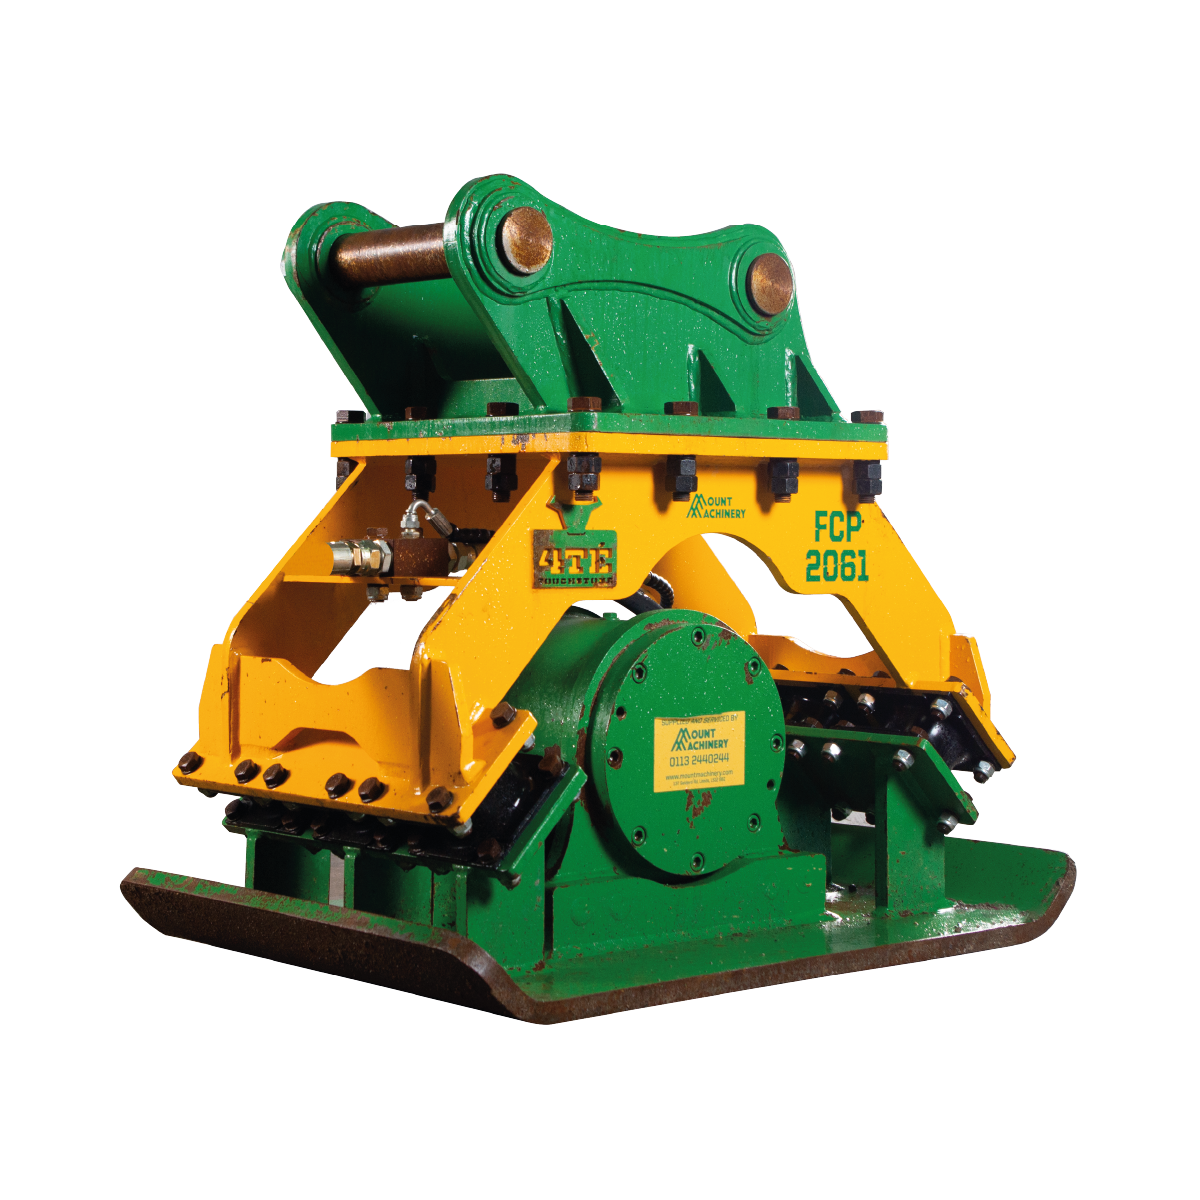 FCP-2061 Compactor Plate For Sale Or Hire